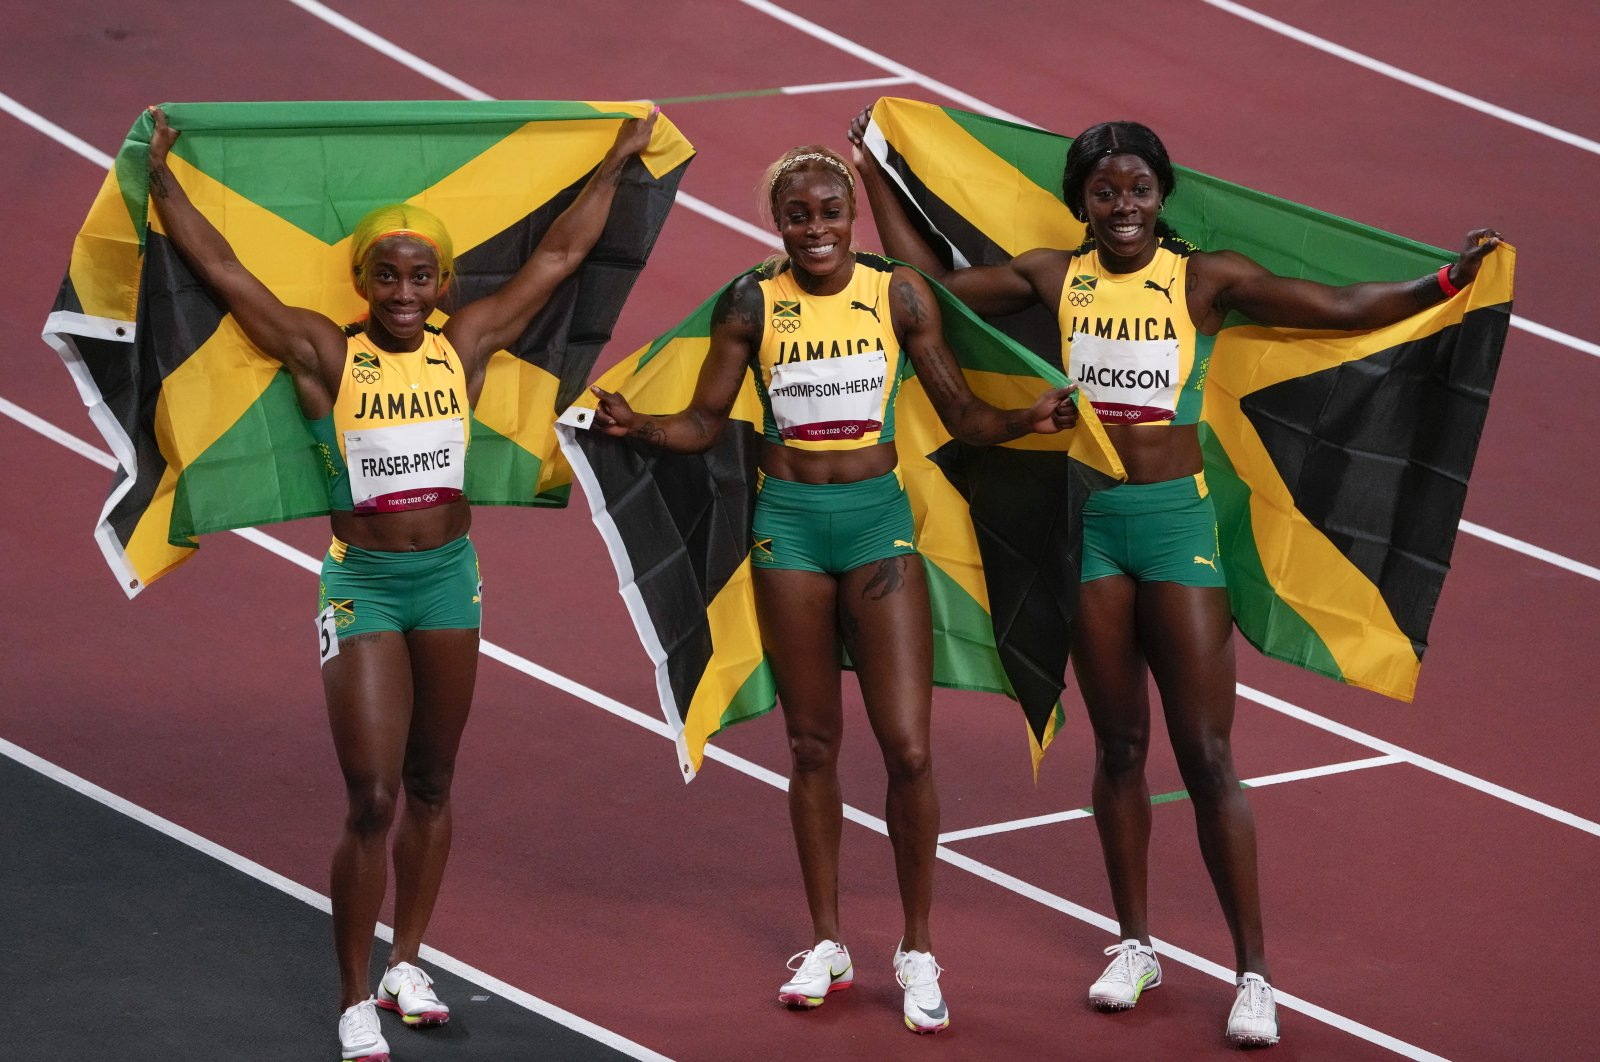 Elaine Thompson-Herah (C) of Jamaica, celebrates after winning the women's 100-meter final with Shelly-Ann Fraser-Pryce, of Jamaica, second place, and Shericka Jackson, of Jamaica, third, at the 2020 Summer Olympics, Saturday, July 31, 2021, in Tokyo. (AP Photo)